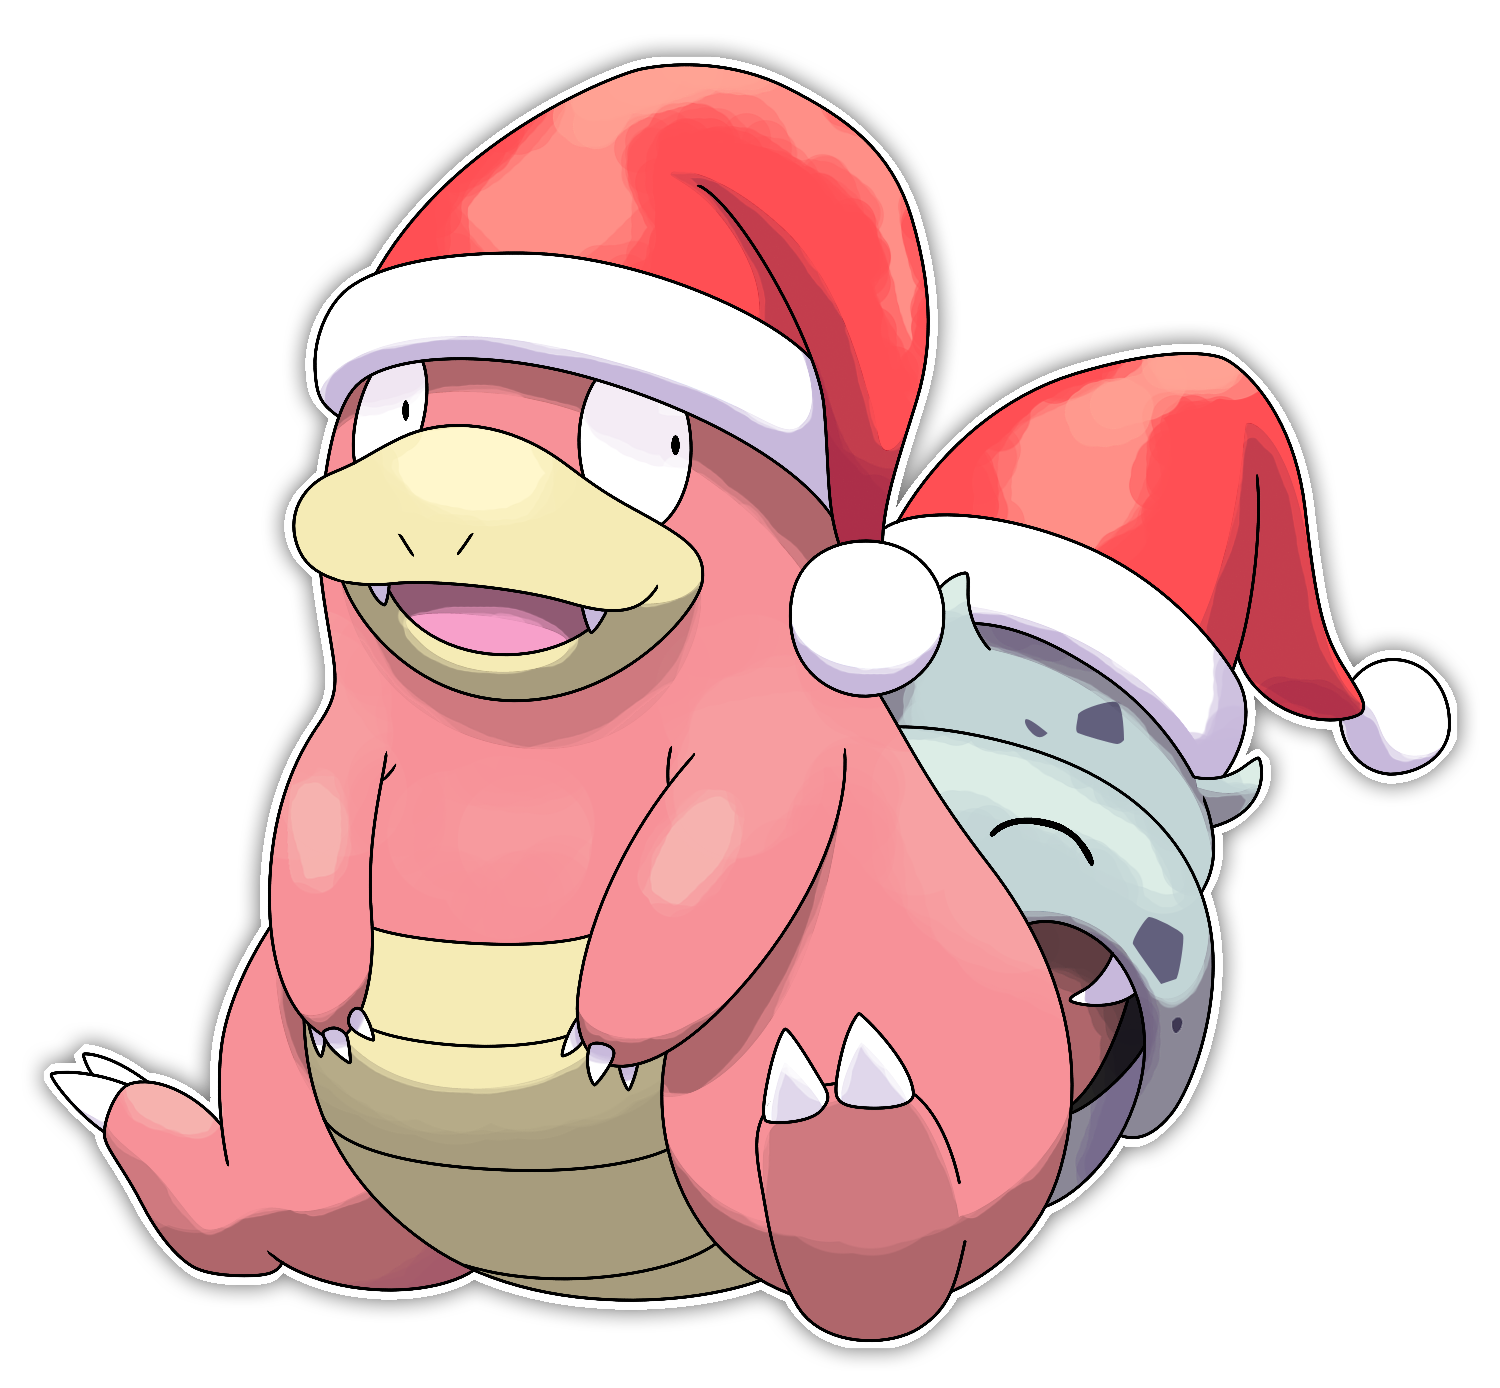 Slowbro - Commission by Smiley-Fakemon on DeviantArt